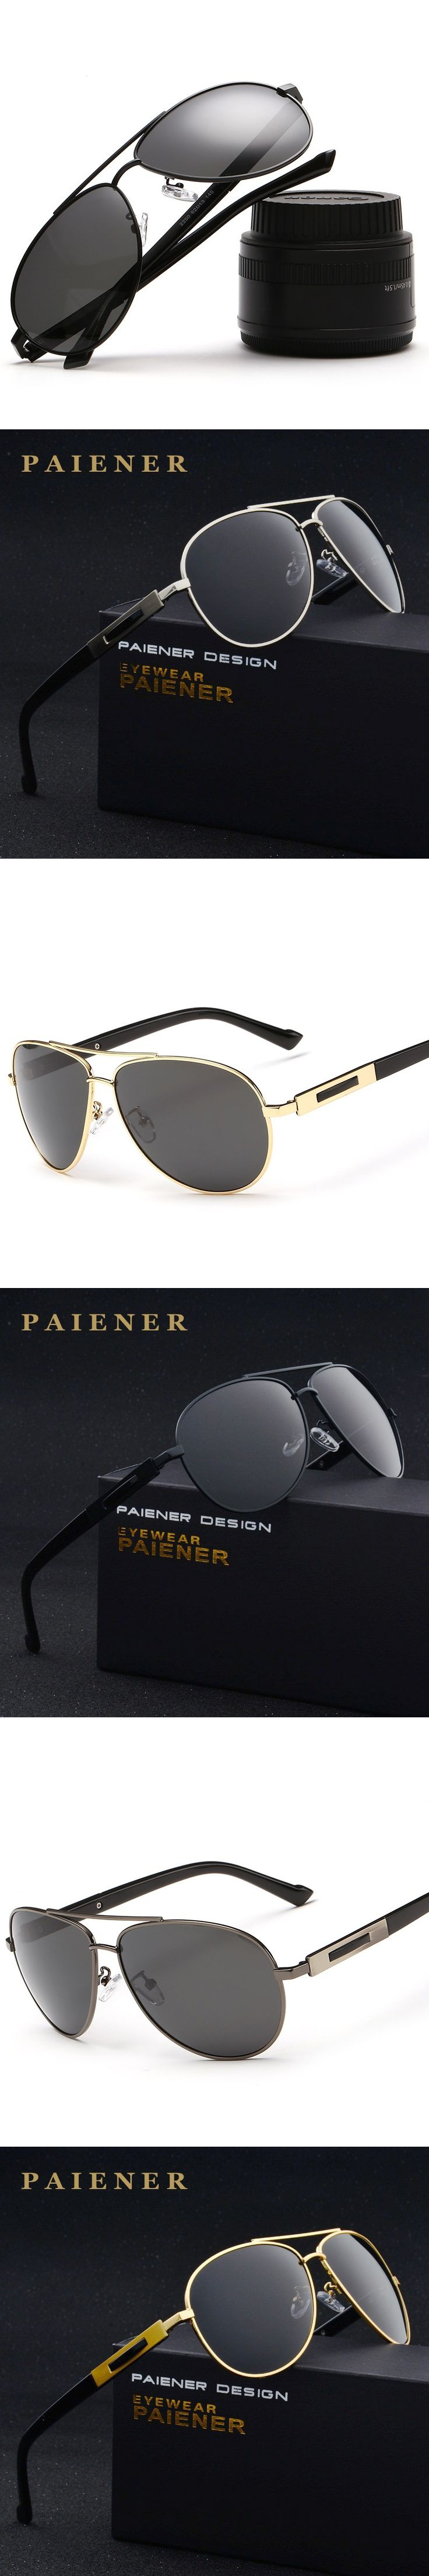 2017 Hot Selling Fashion Polarized Outdoor Driving Sunglasses for Men women glasses Brand Designer with High Quality 4 Colors